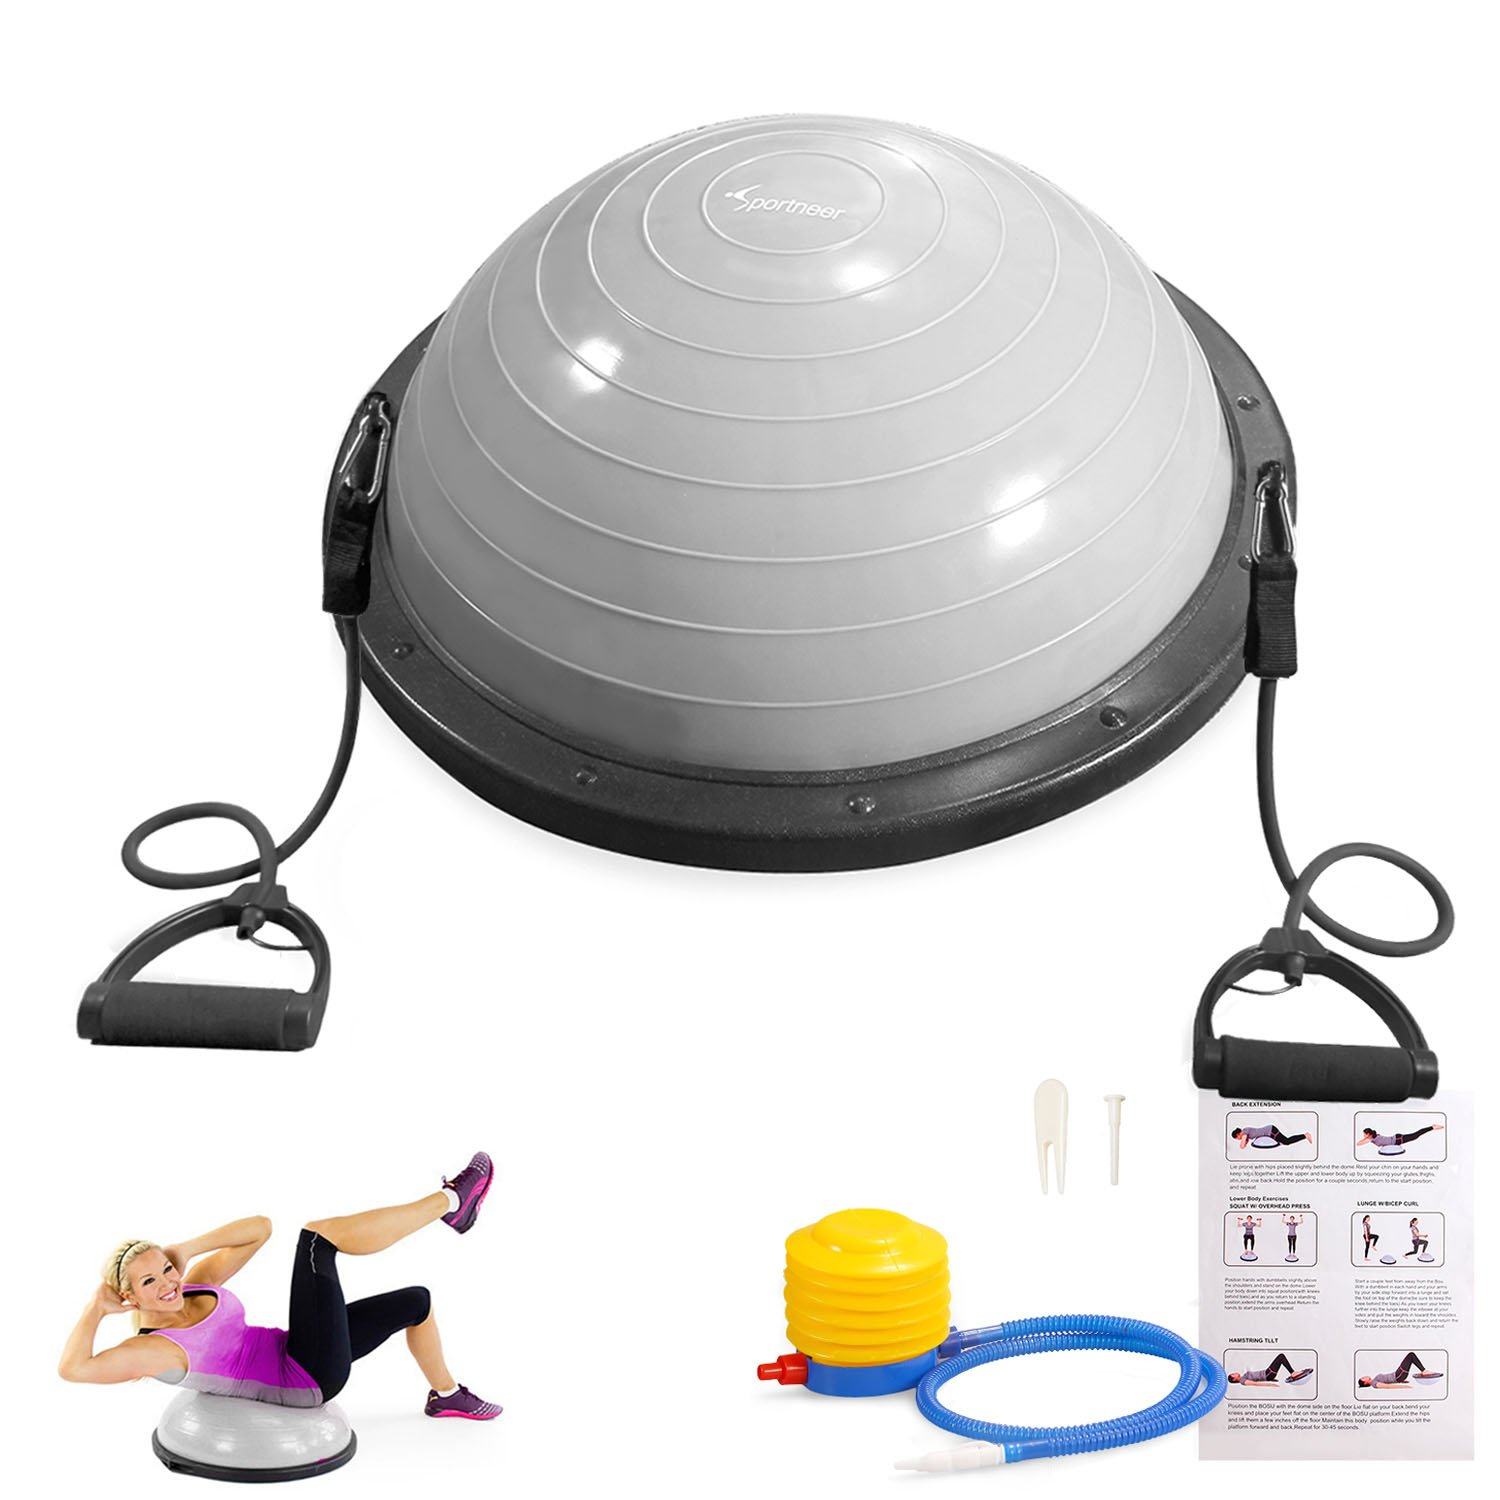 Sportneer Balance Ball Trainer For Yoga Fitness Strength Exercise Workout with Air Pump, Resistance Bands